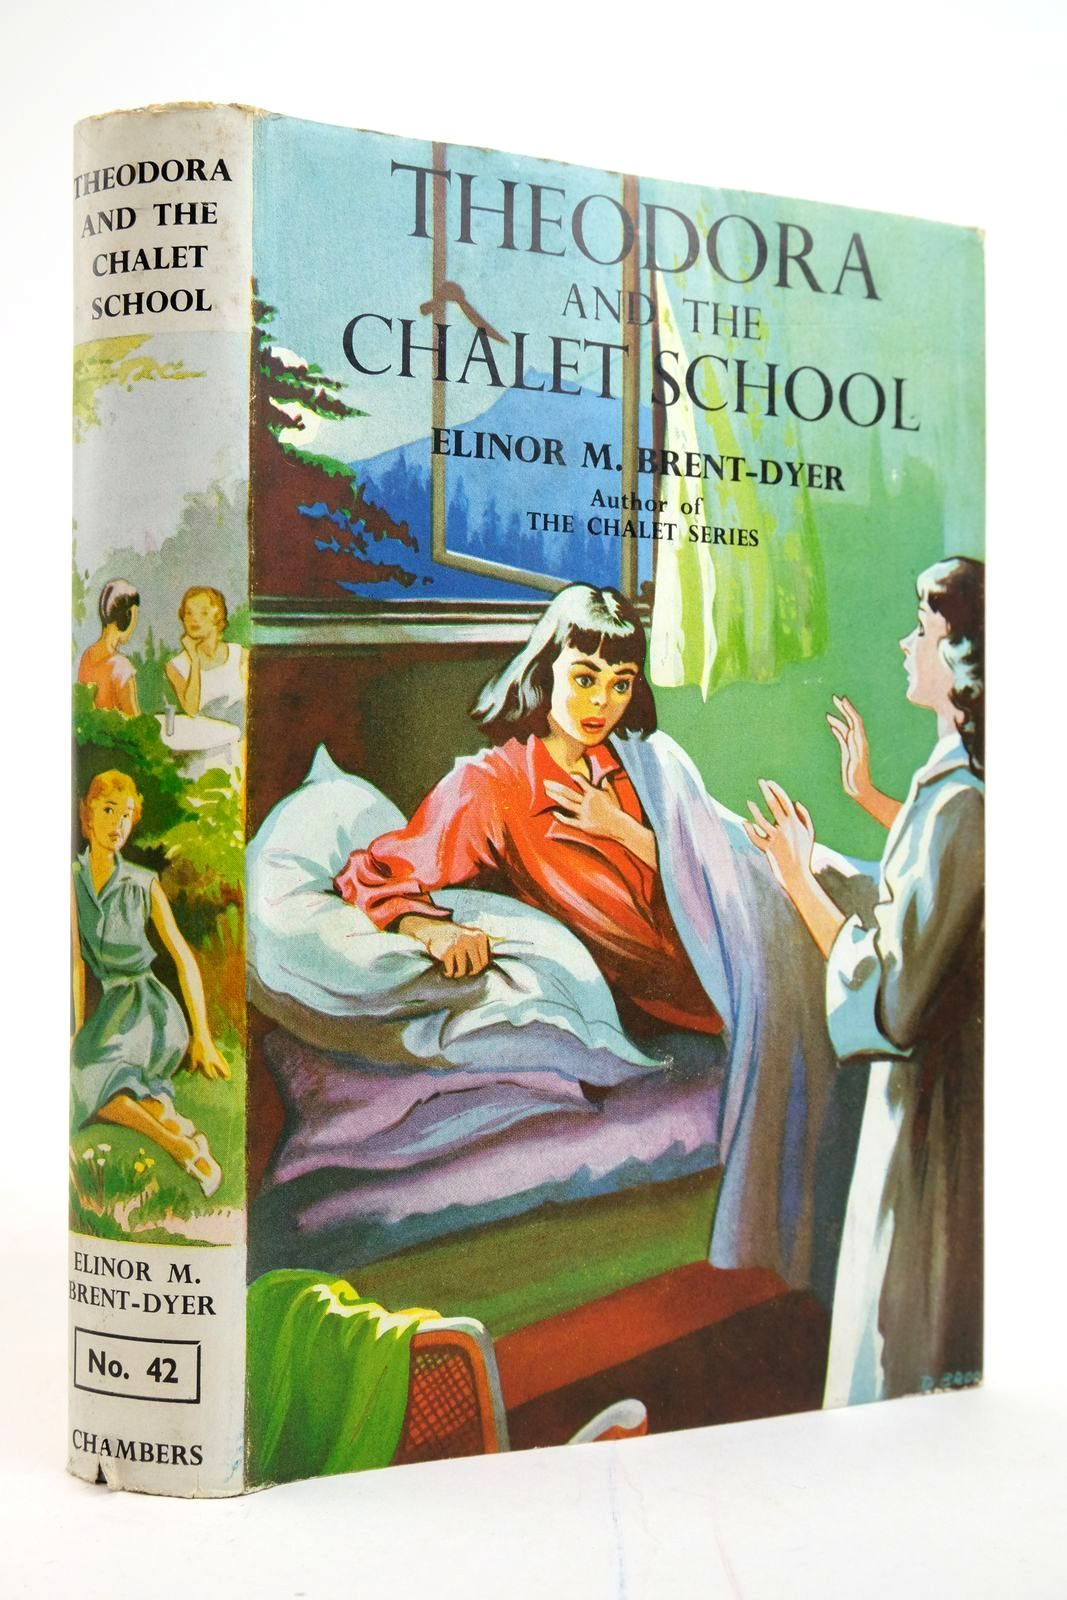 Photo of THEODORA AND THE CHALET SCHOOL written by Brent-Dyer, Elinor M. illustrated by Brook, D. published by W. & R. Chambers Limited (STOCK CODE: 2135228)  for sale by Stella & Rose's Books